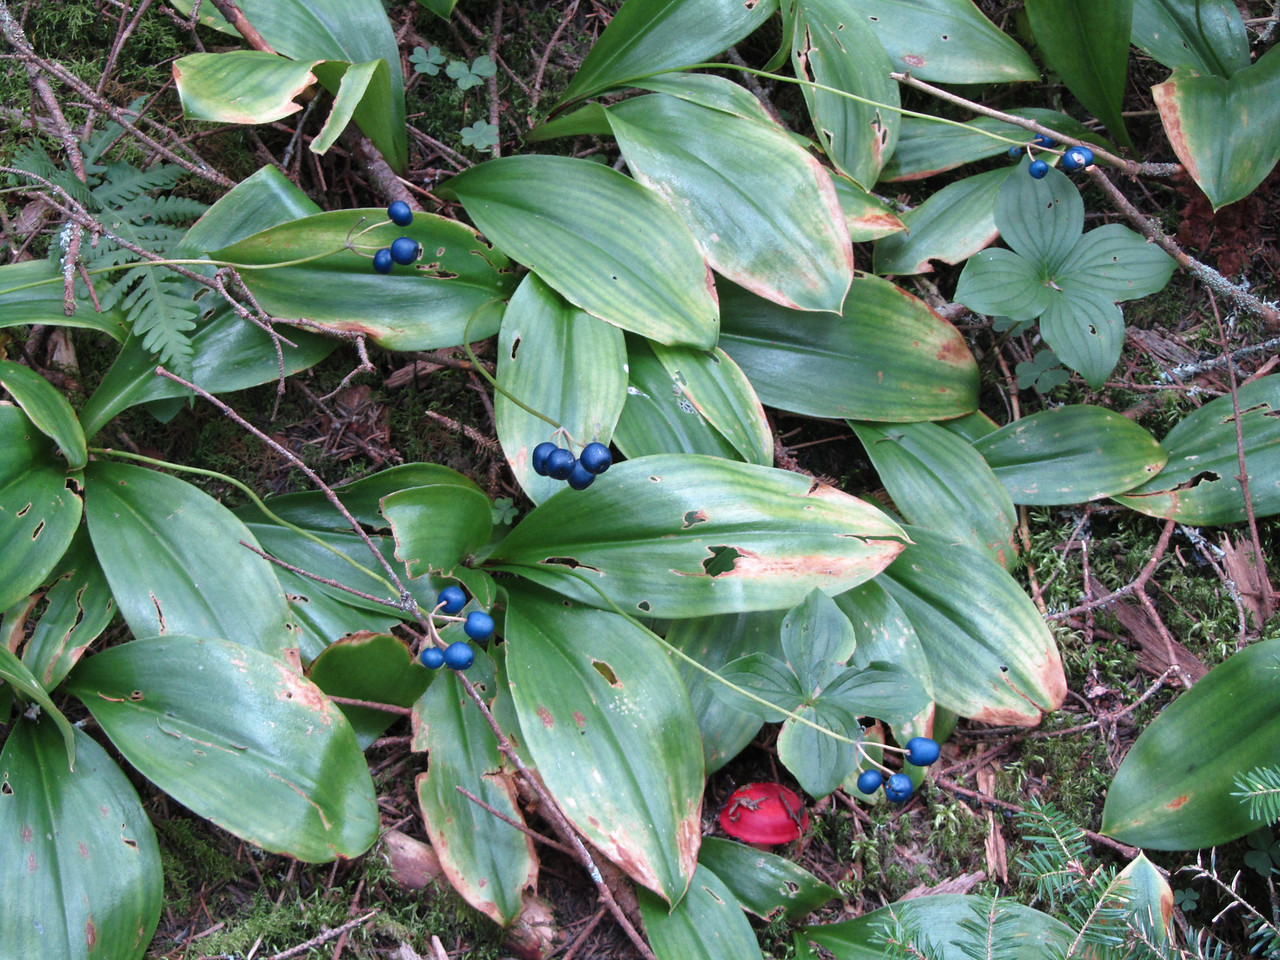 Interesting blue berries and a red mushroom.